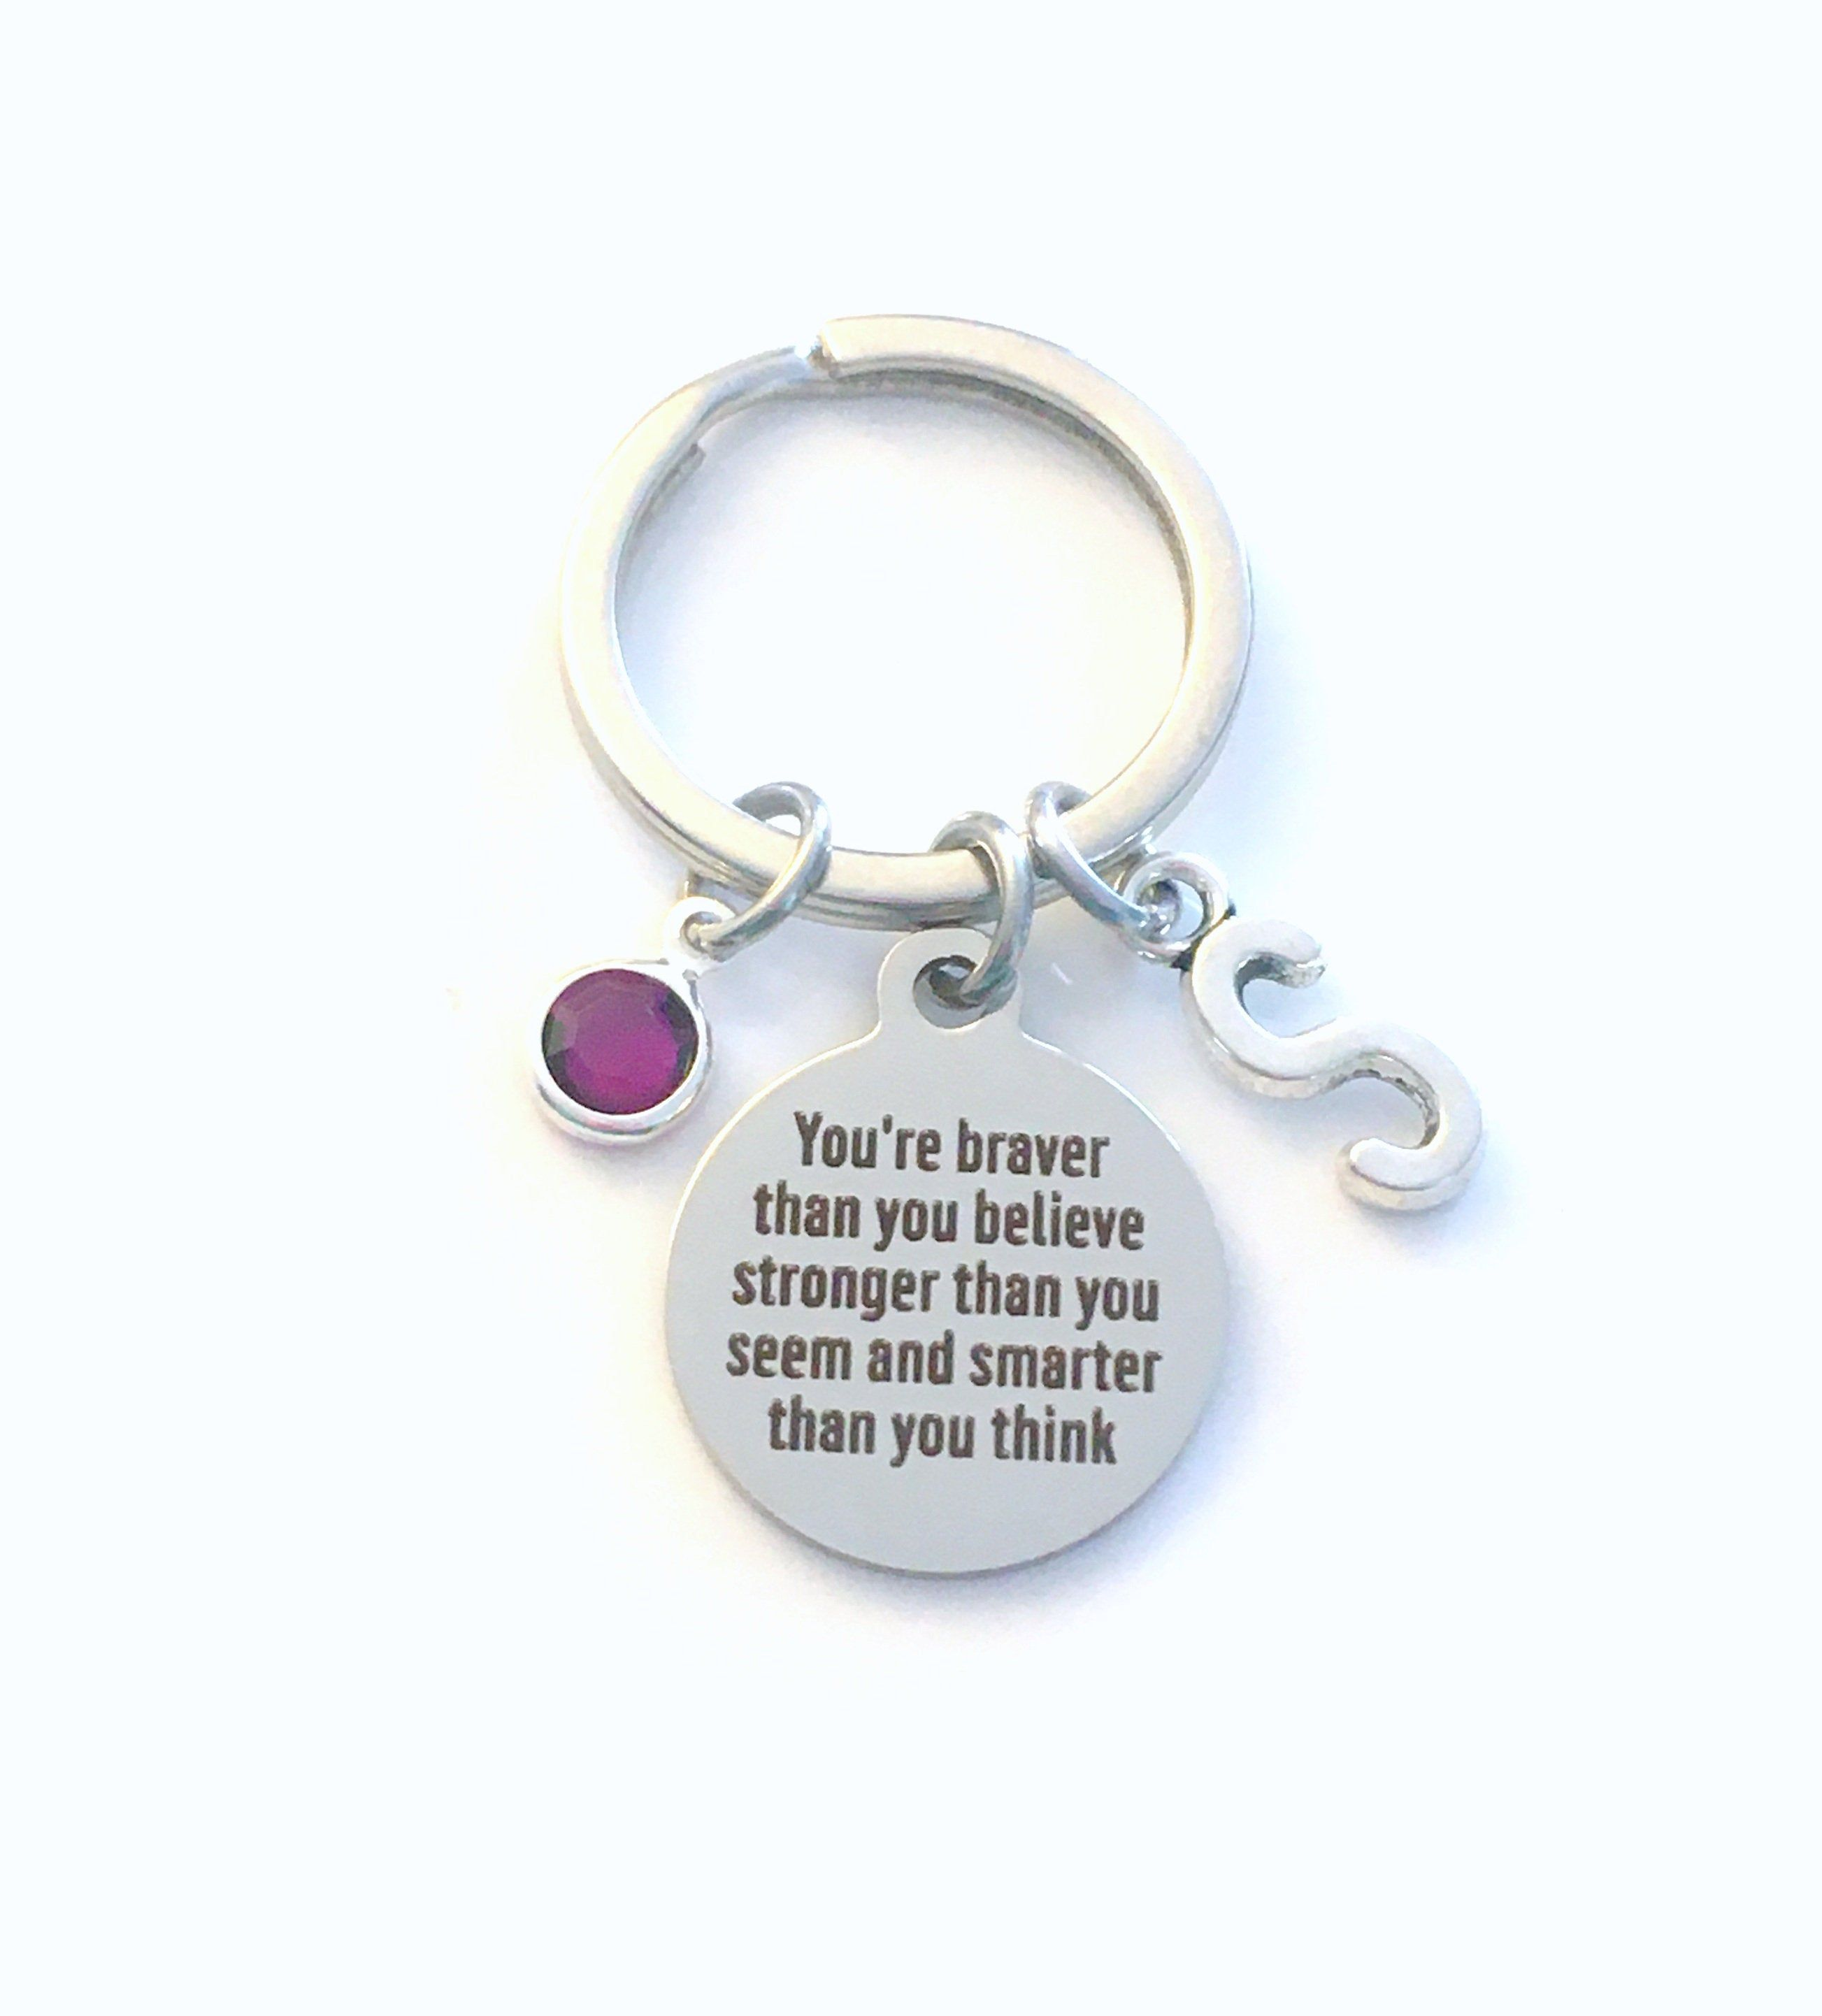 Home is Where Love is Family Keyring Key Ring New Home House Gift for Daughter Son Girlfriend Boyfriend Wife Girlfriend